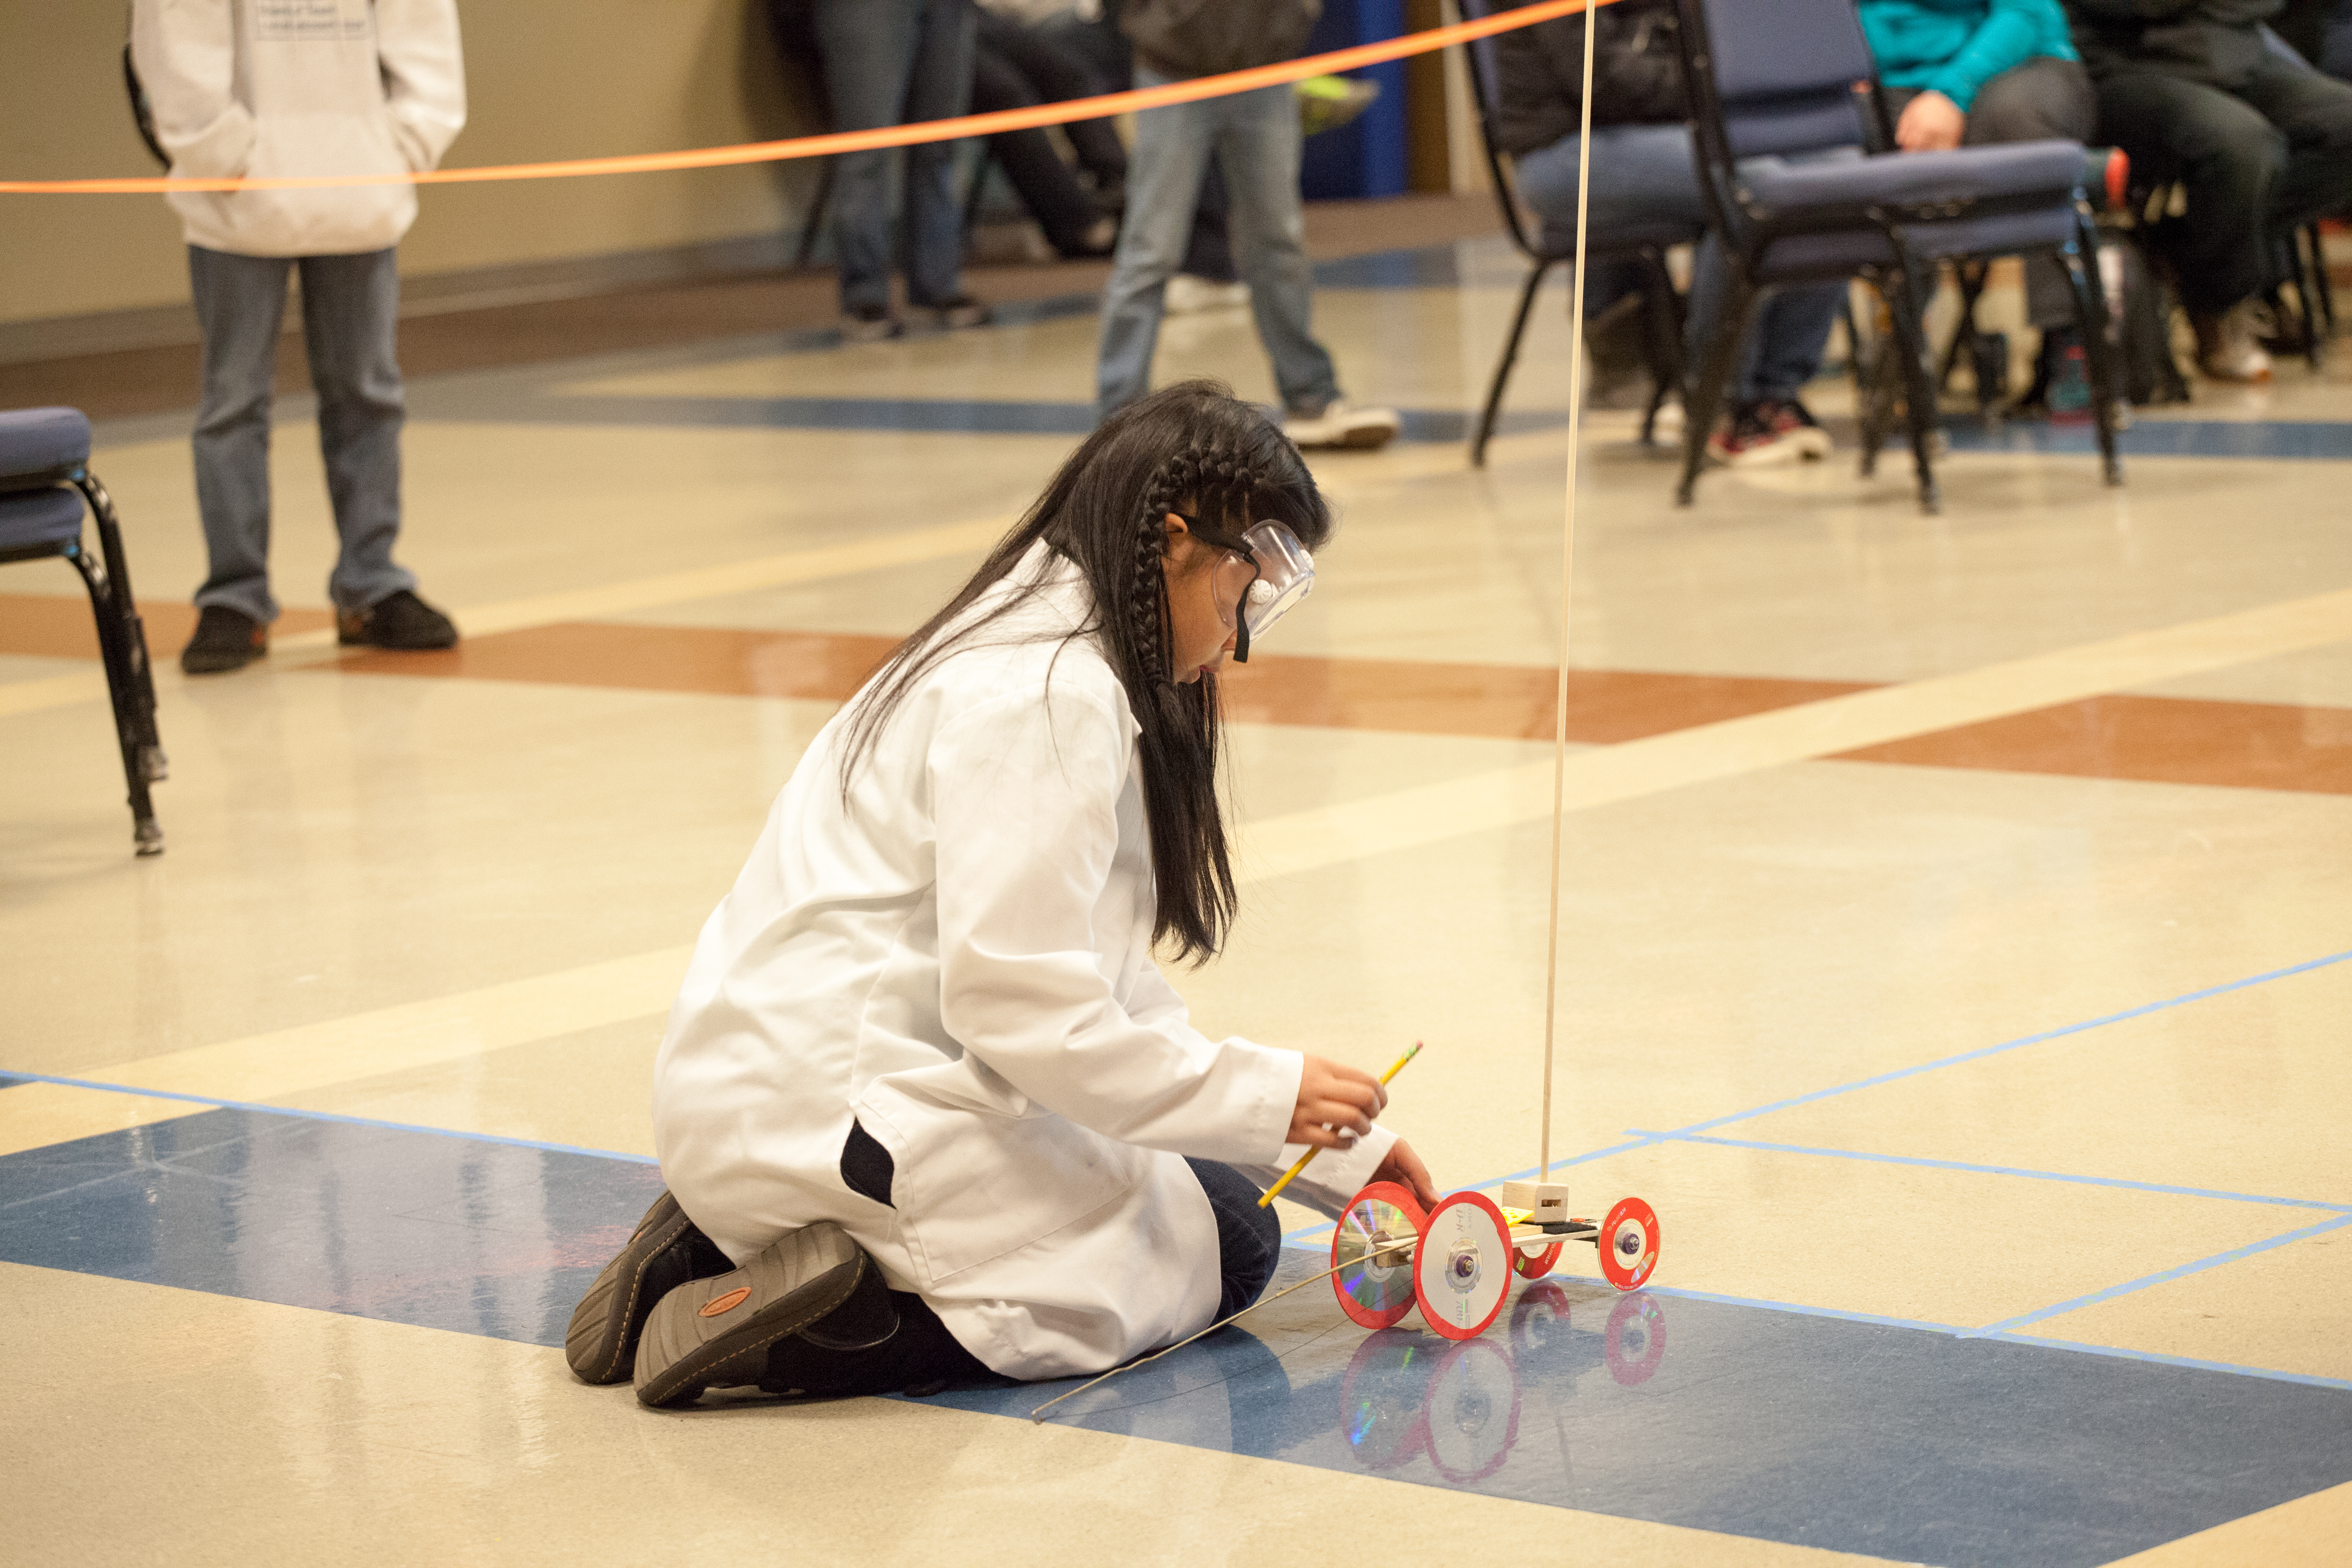 Young woman in white lab coat crouched down with small robotic vehicle.